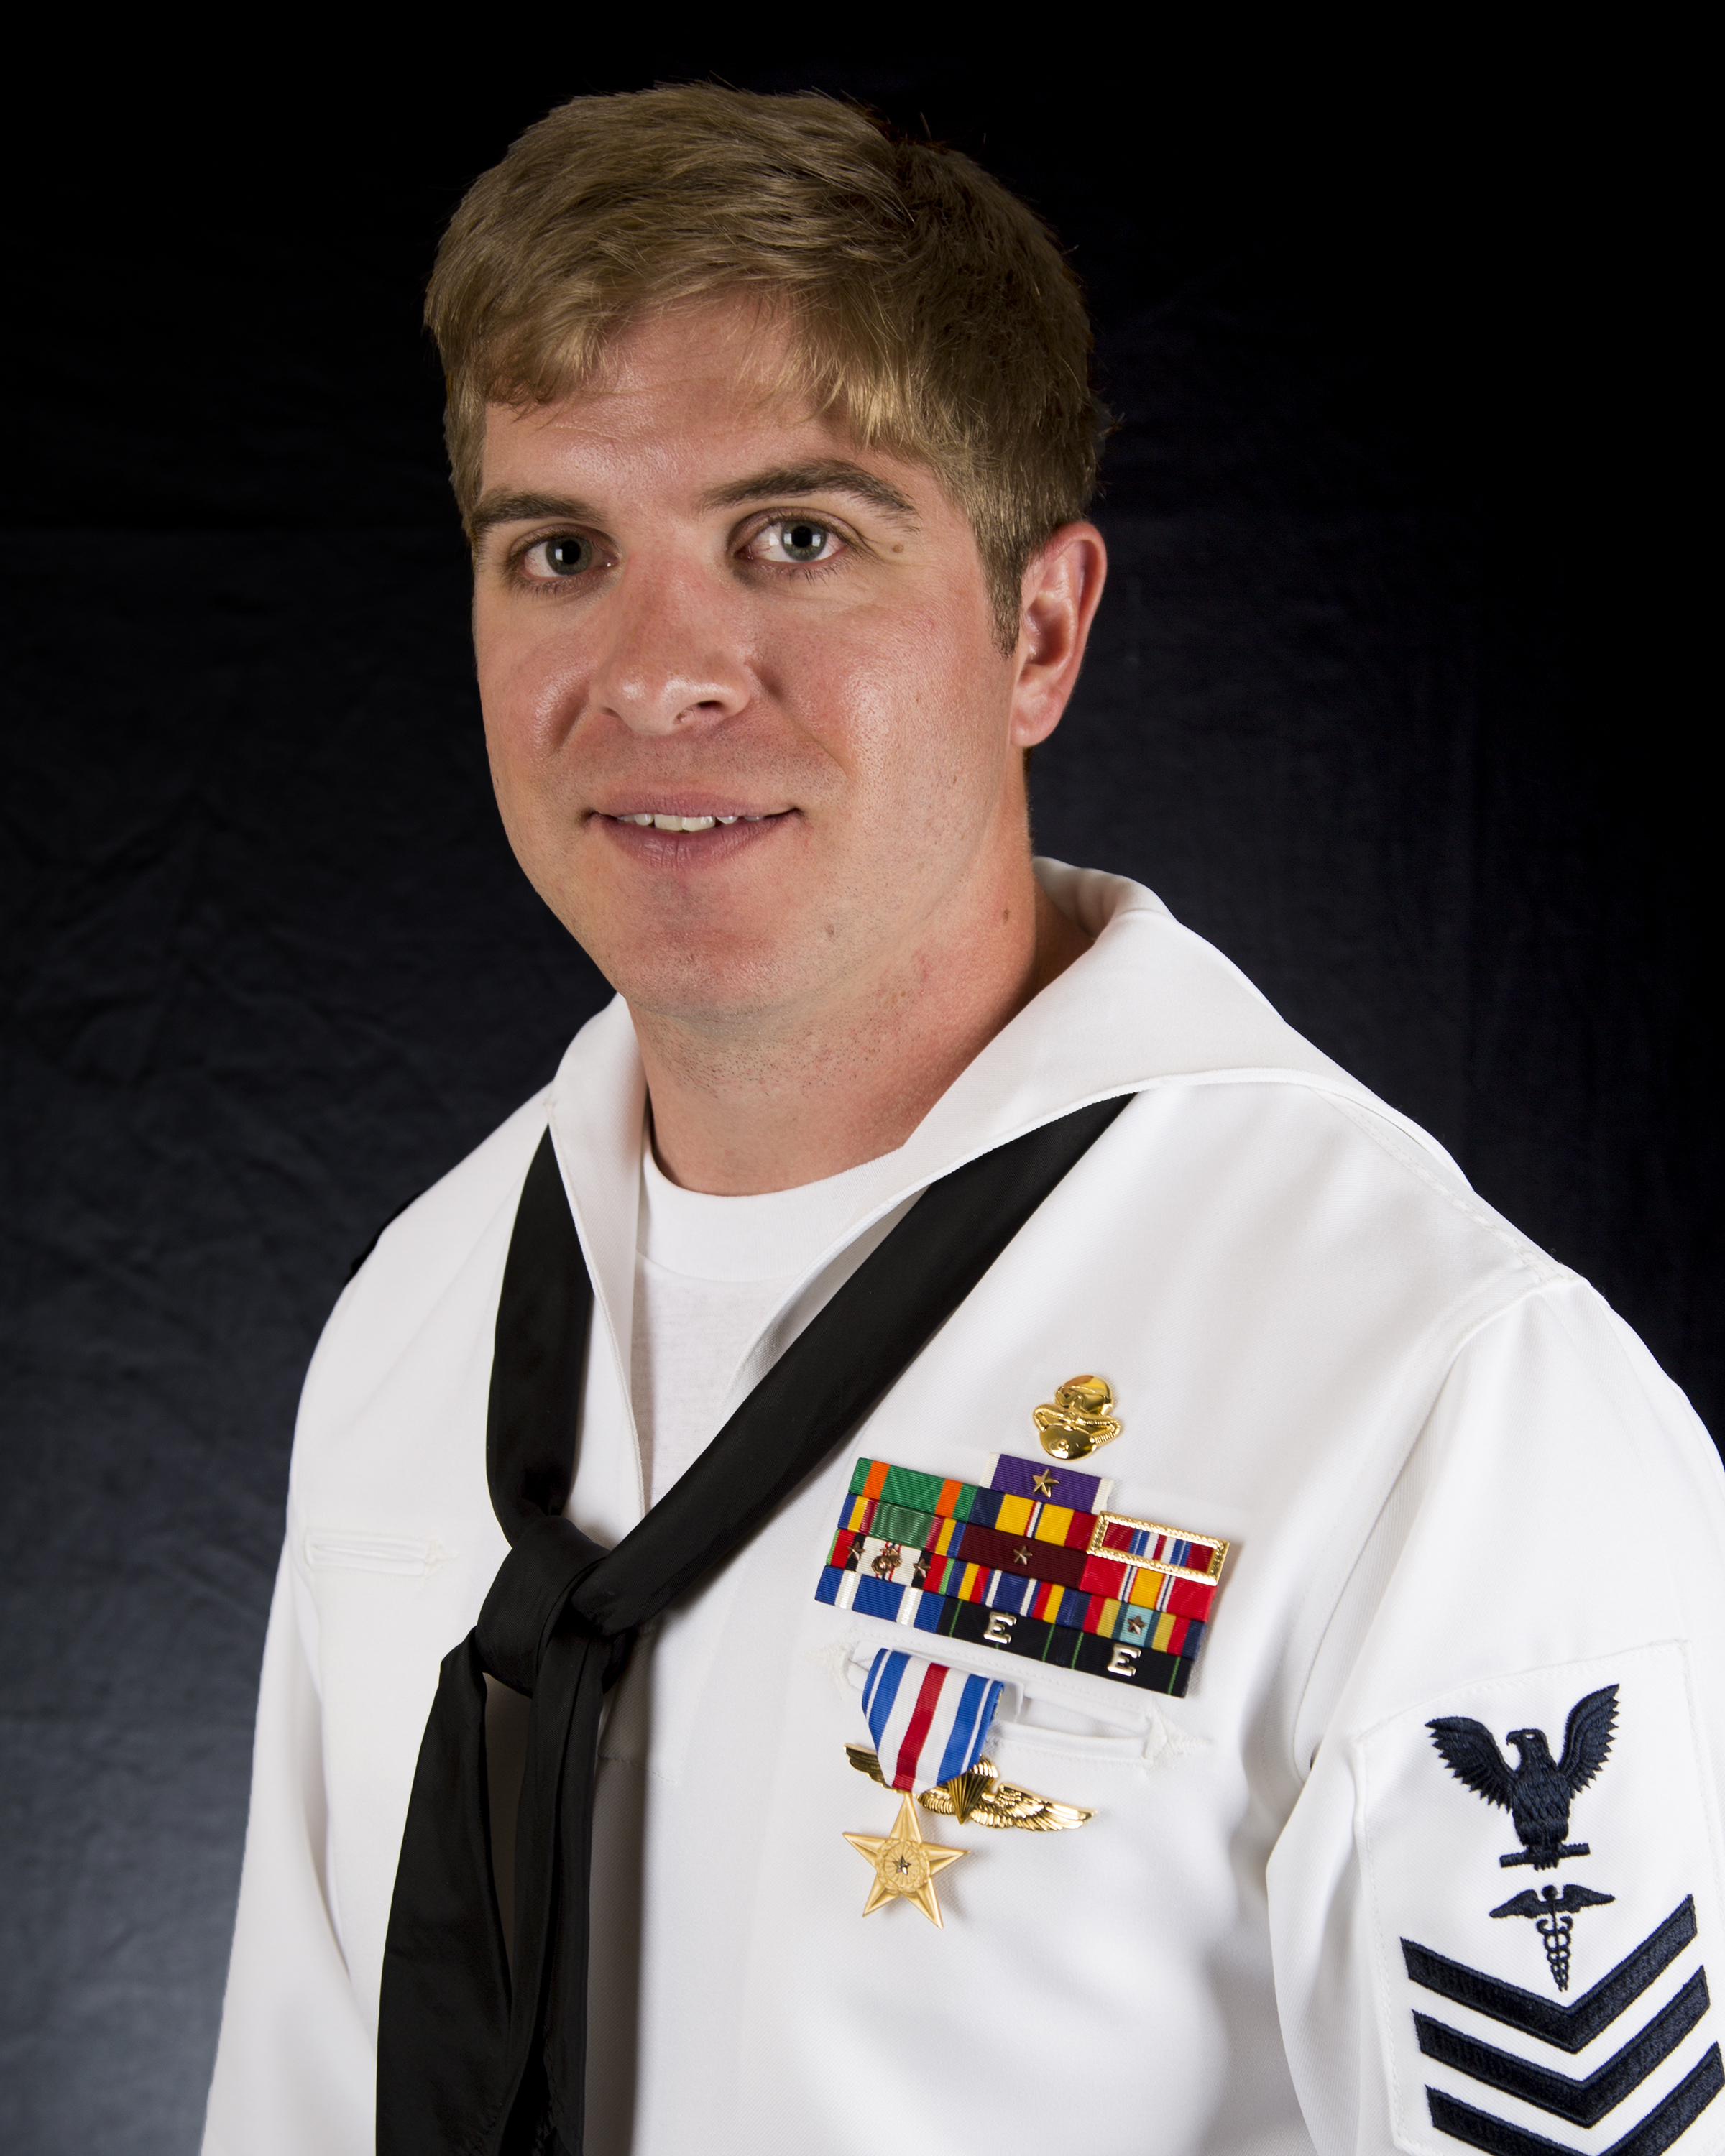 SPECIAL OPERATIONS: Navy Commando Medic Awarded Silver Star for ...